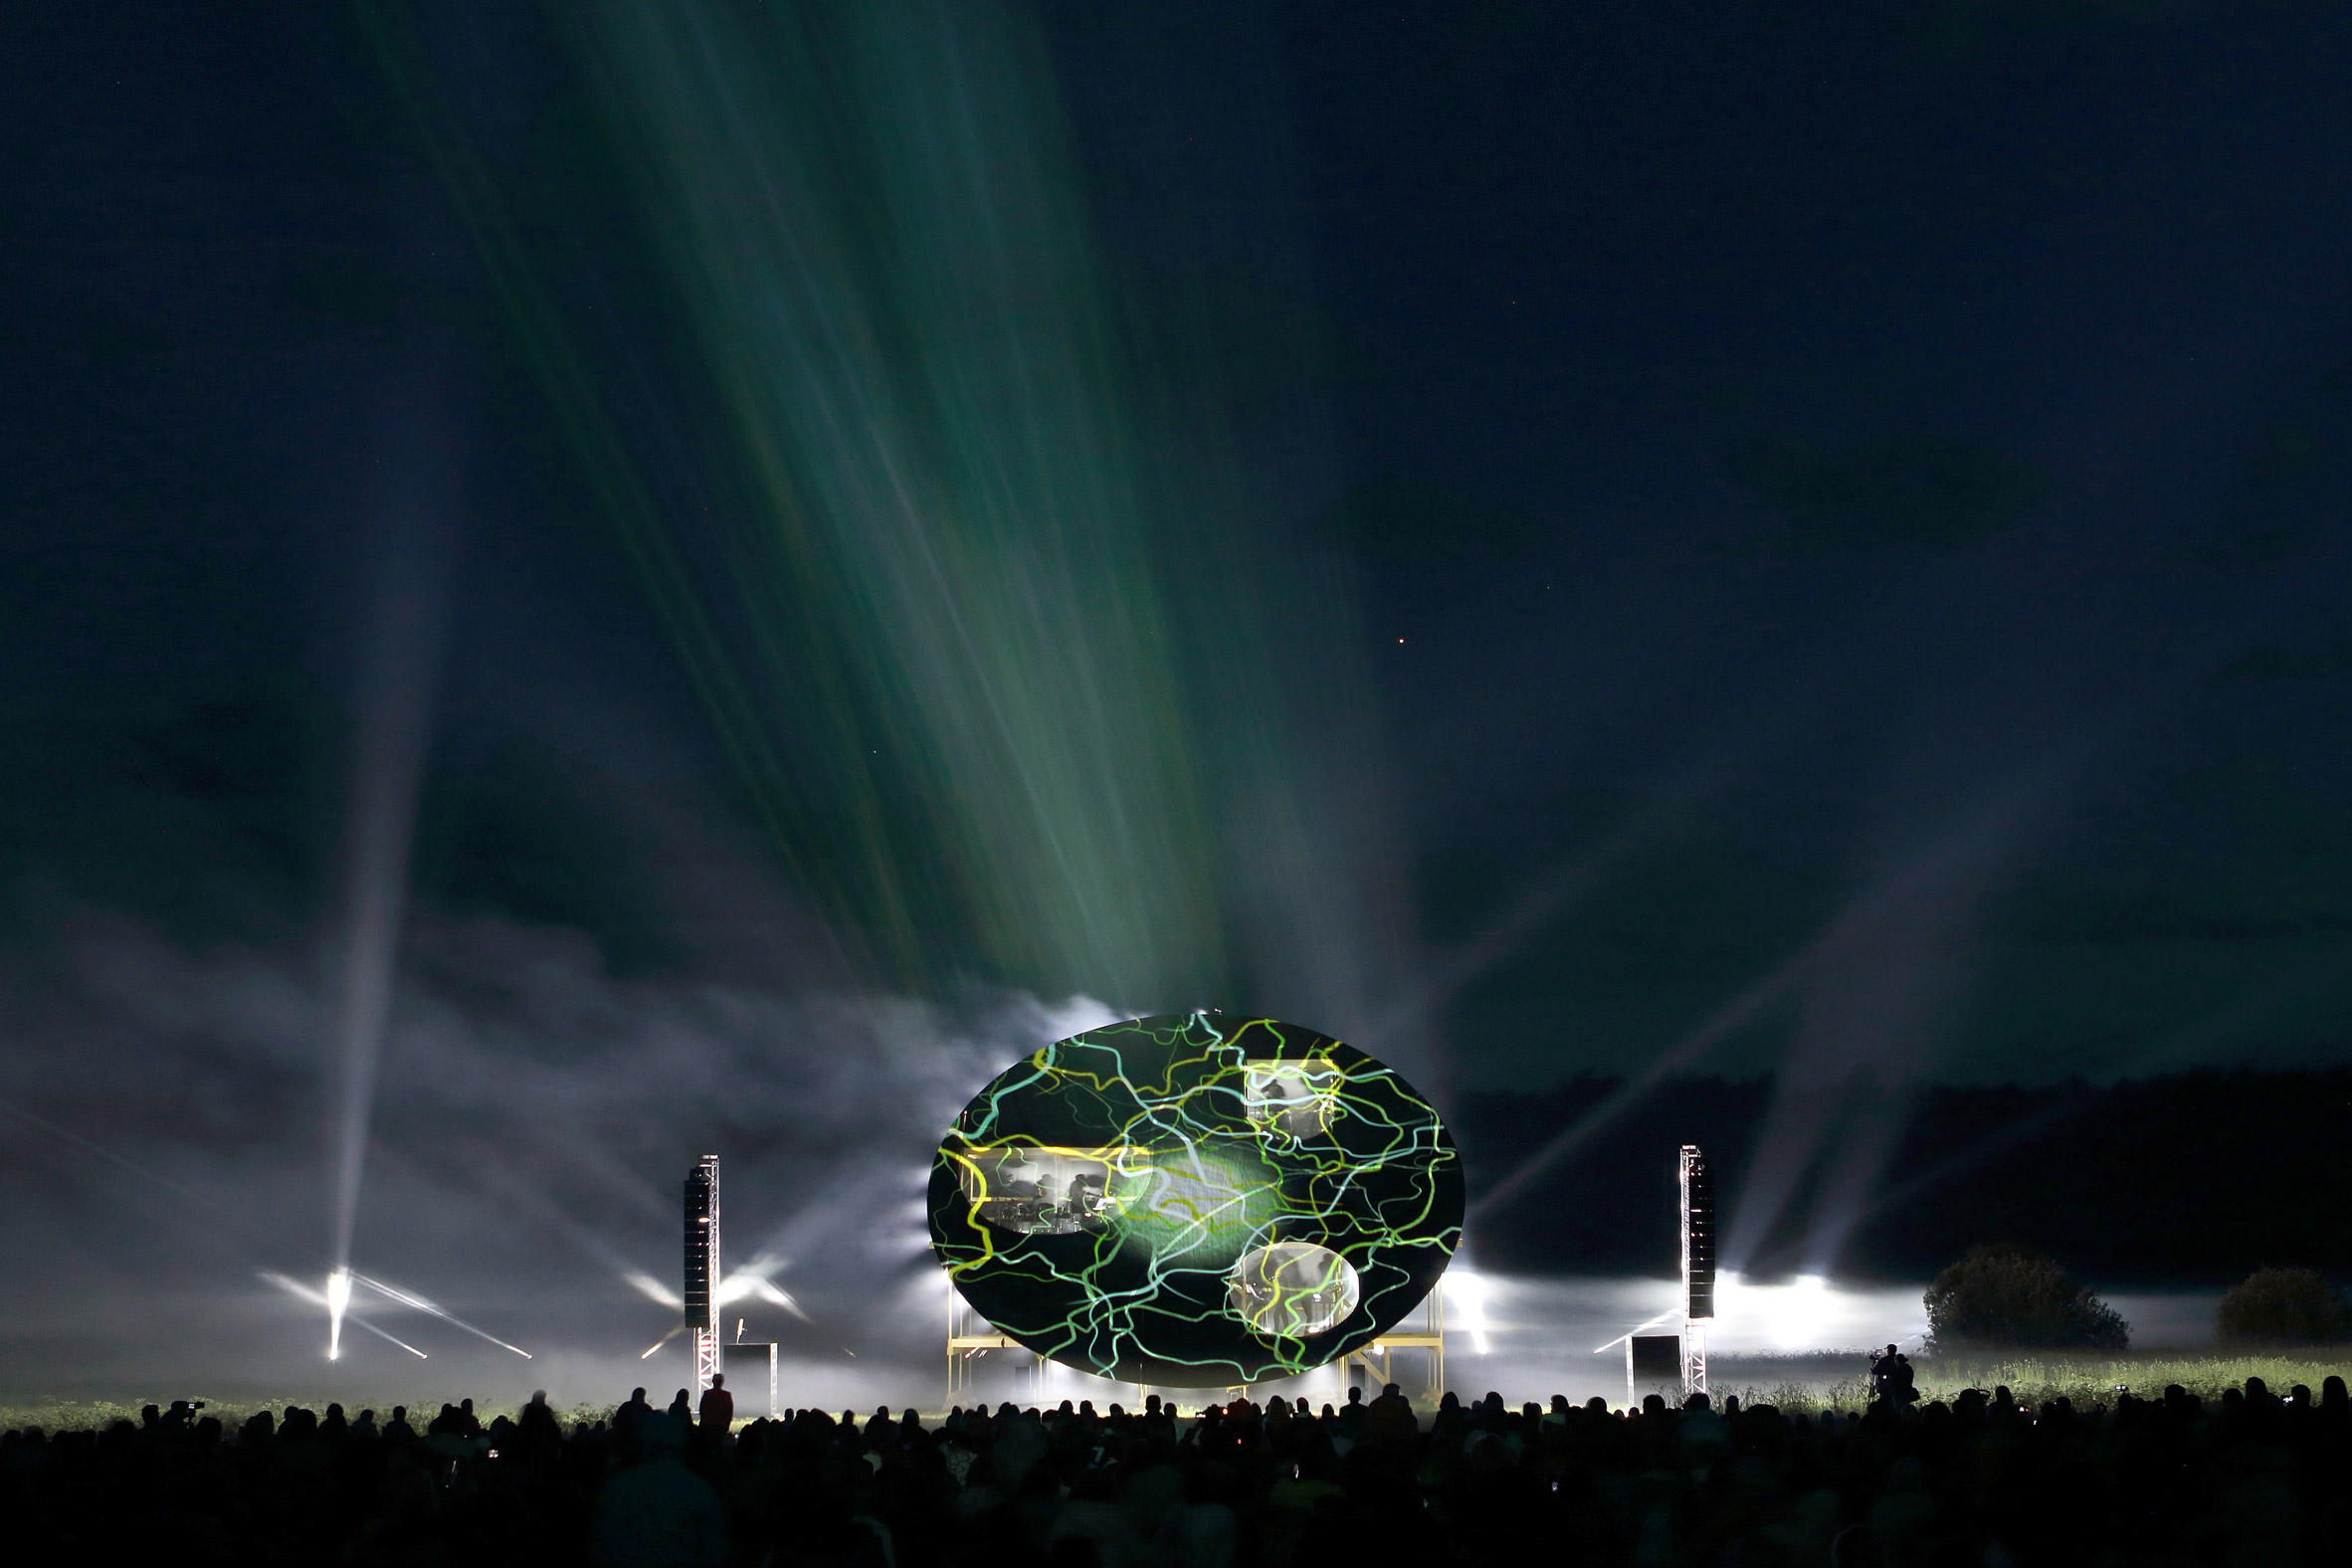 Earthworm-inspired pavilion built in Latvia's floodplains stages concerts and light shows